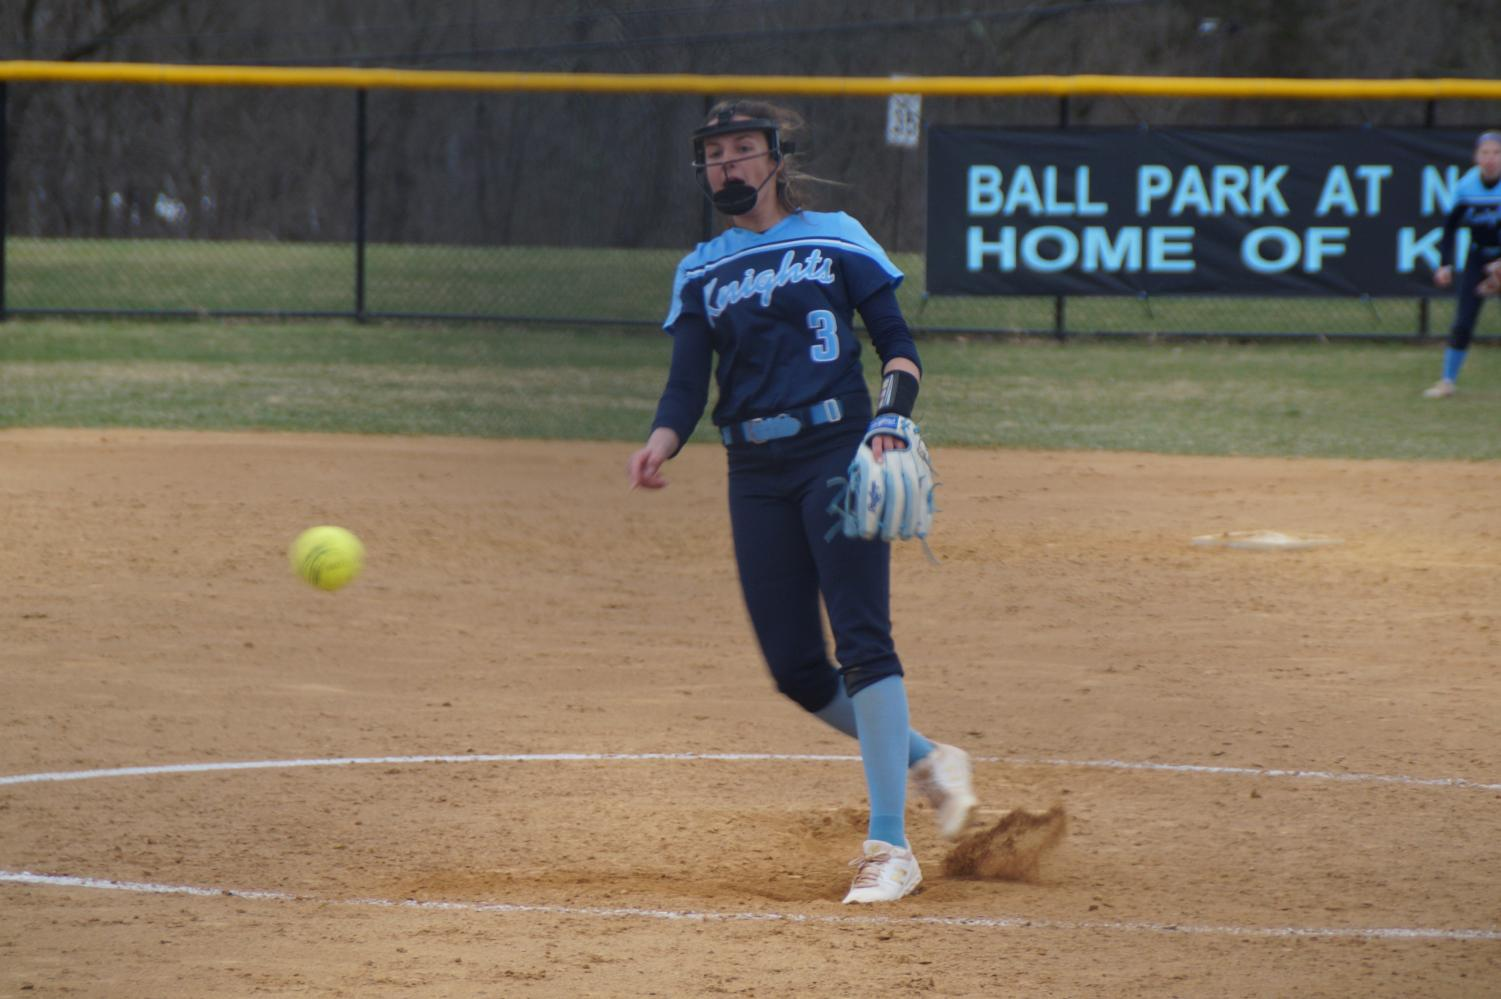 Sophomore Mady Volpe delivers a pitch in the top of the 7th.